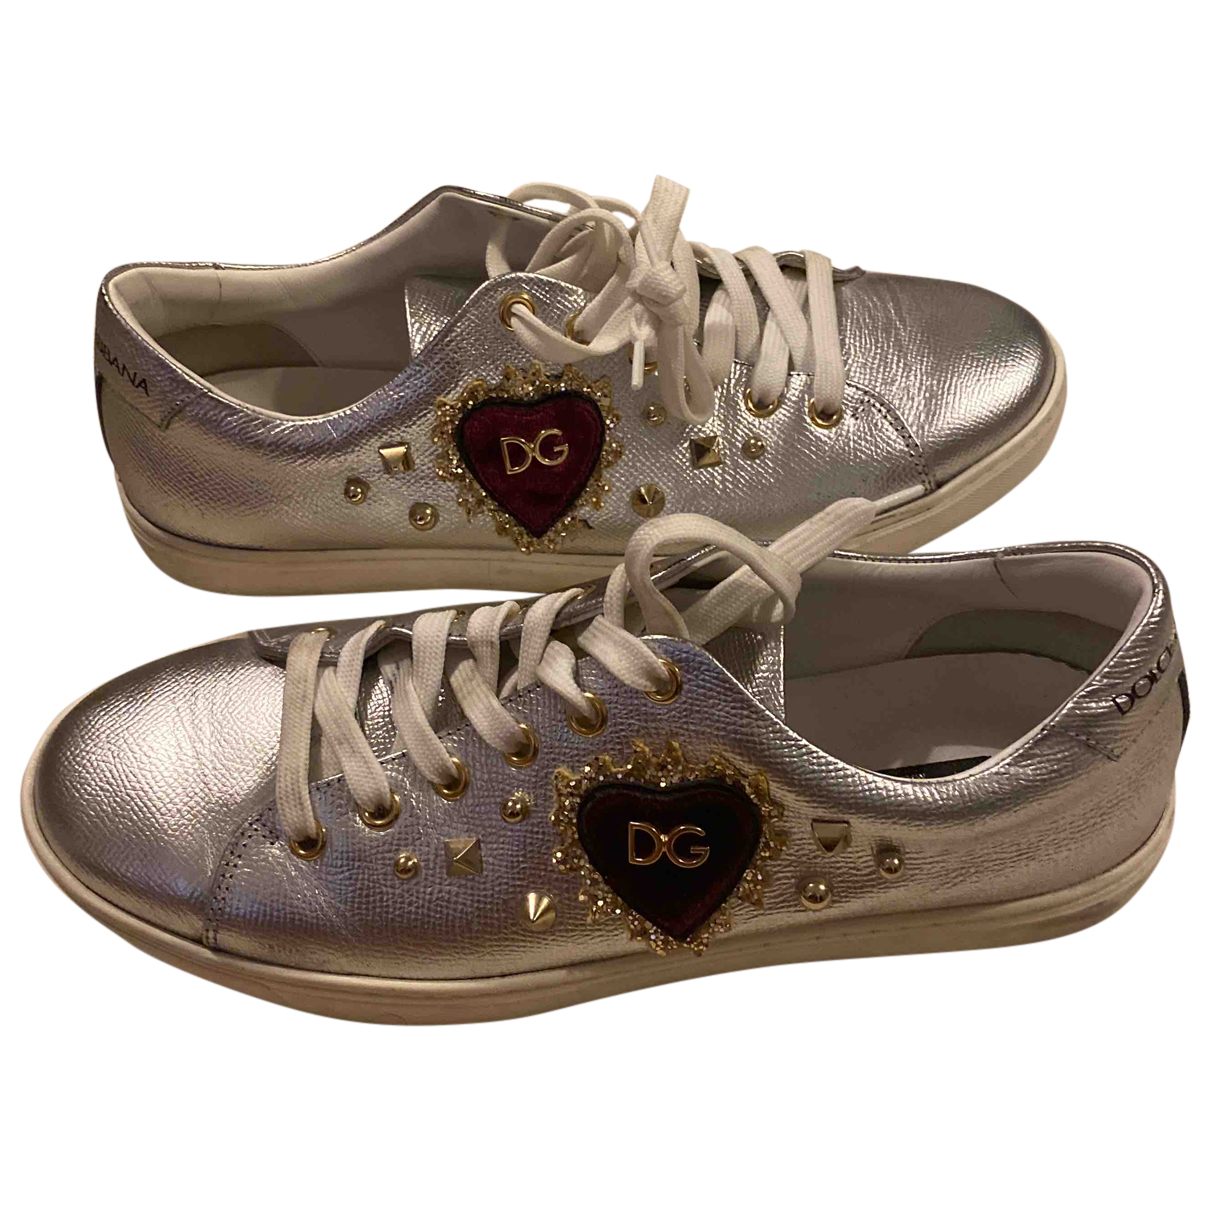 Dolce & Gabbana N Silver Leather Trainers for Women 39.5 EU